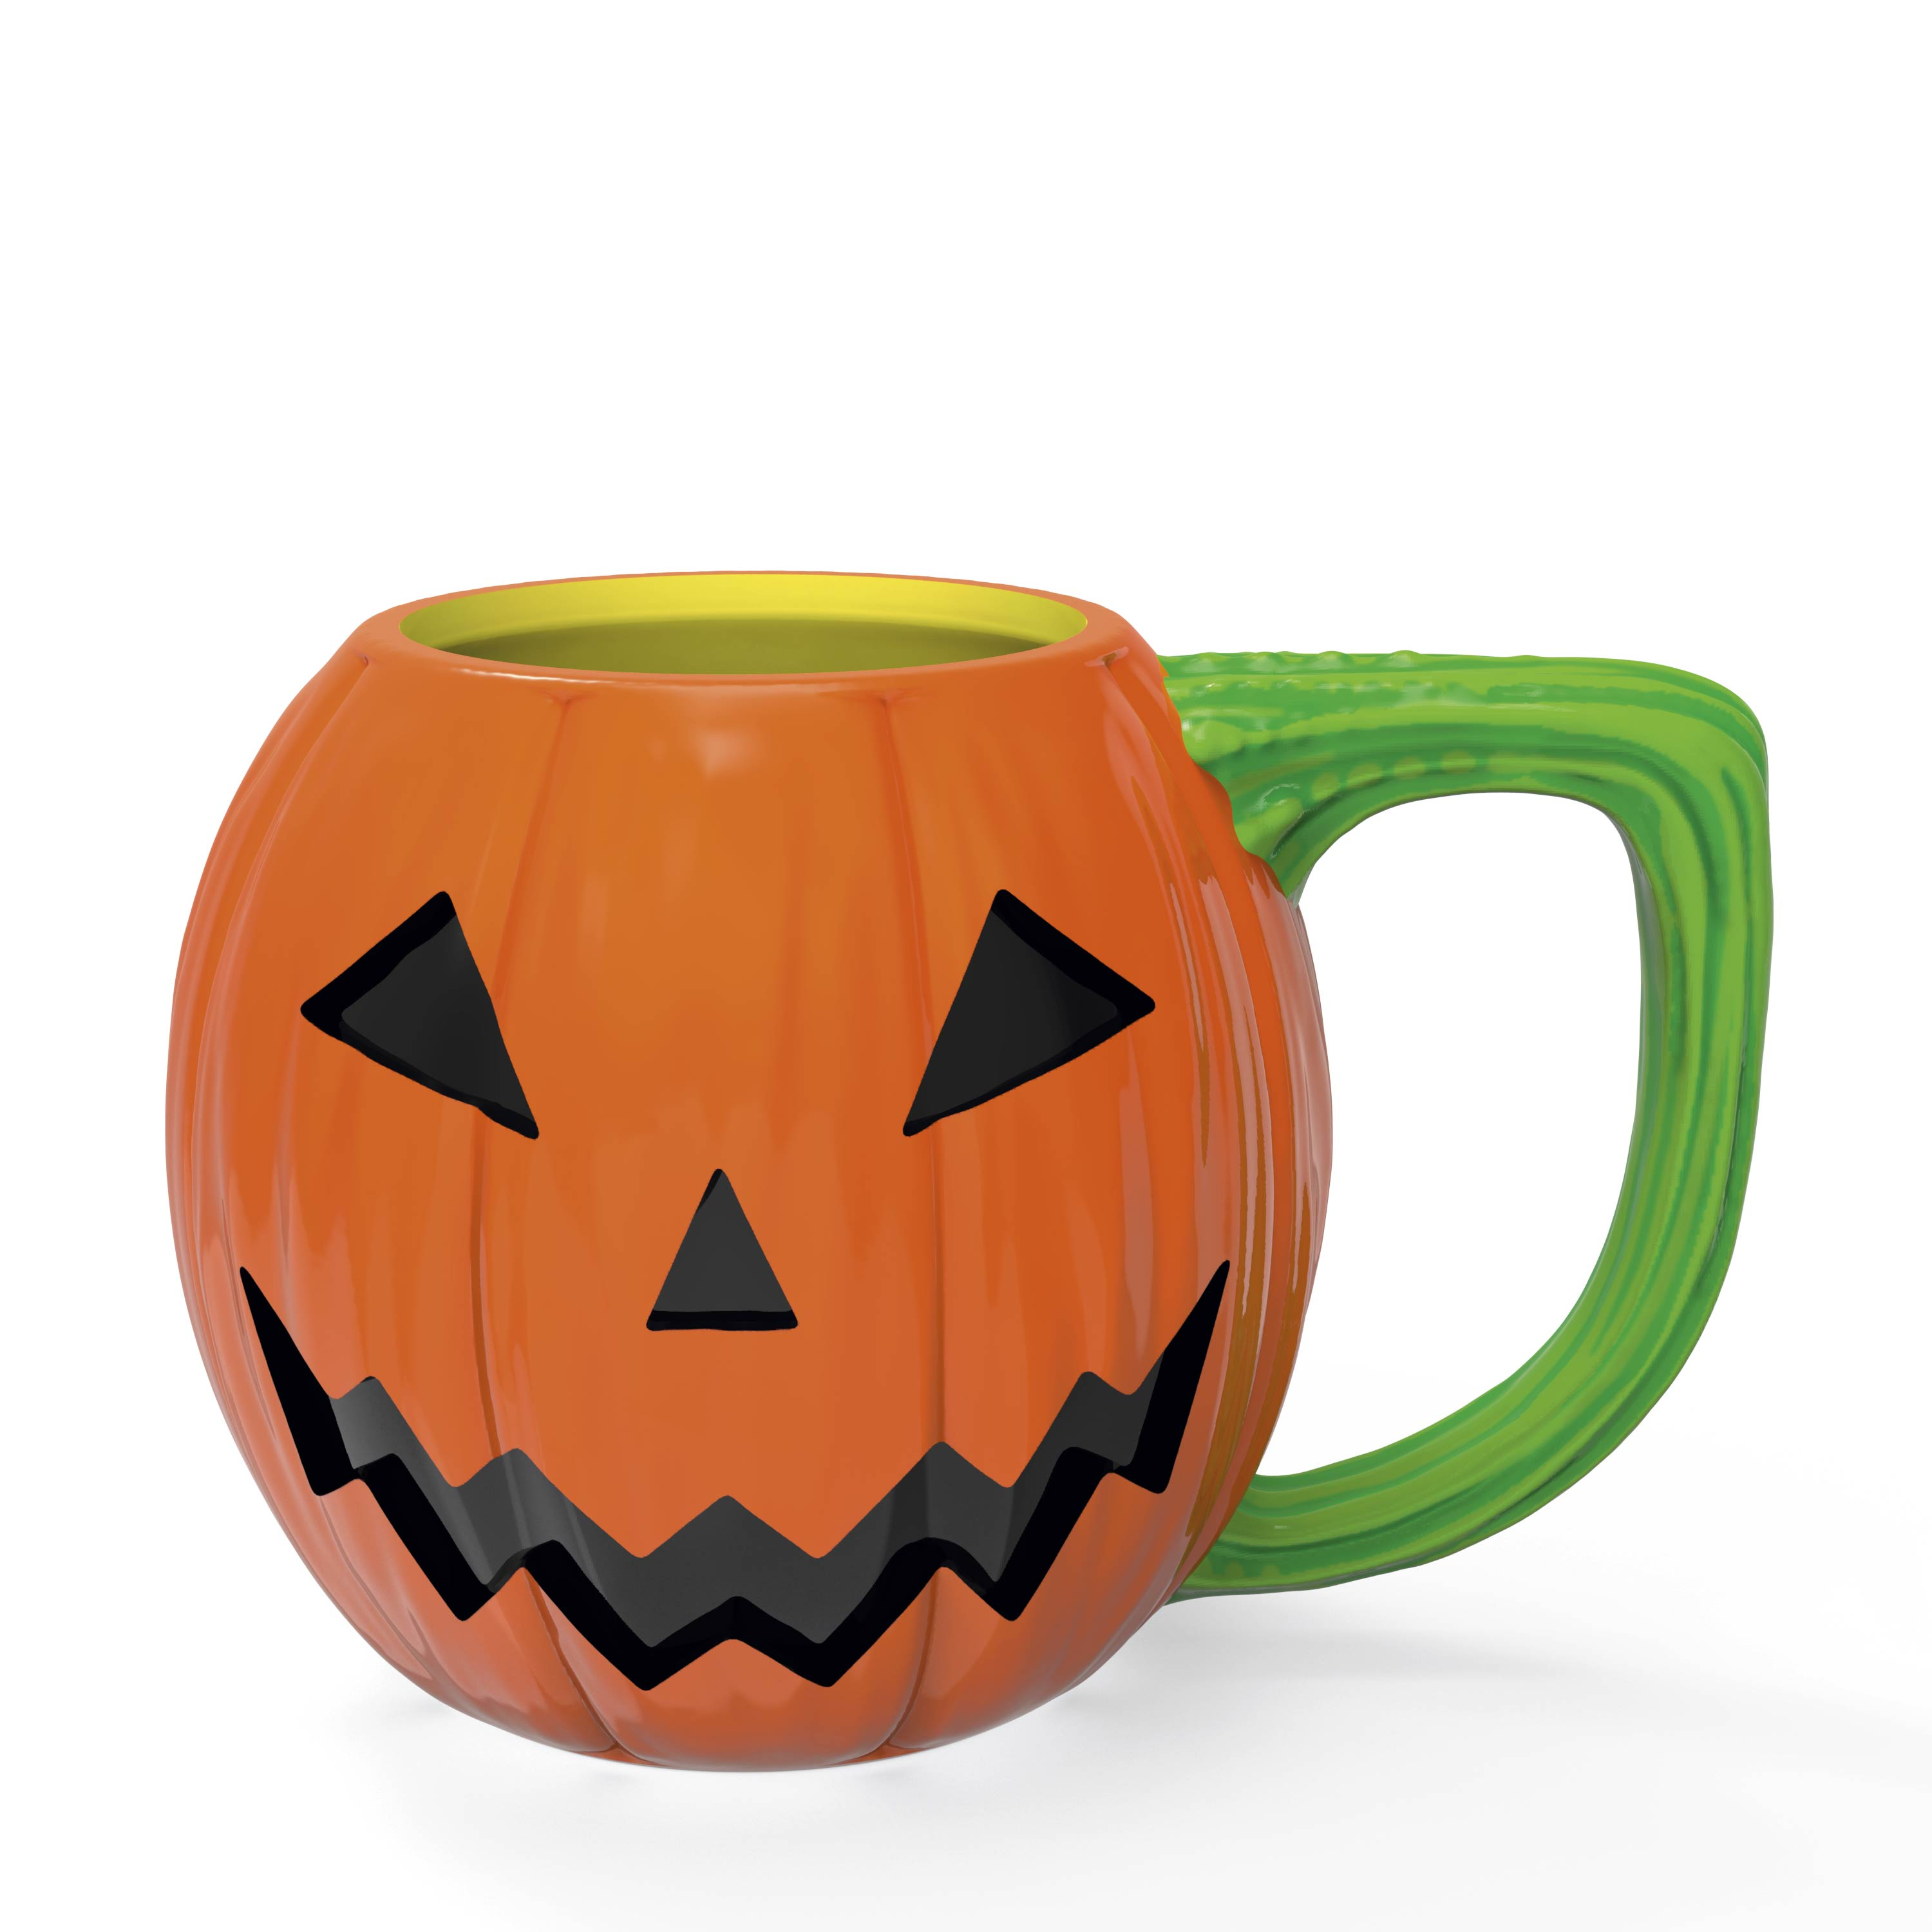 Halloween 15 ounce Coffee Mug and Spoon, Jack O' Lantern slideshow image 7